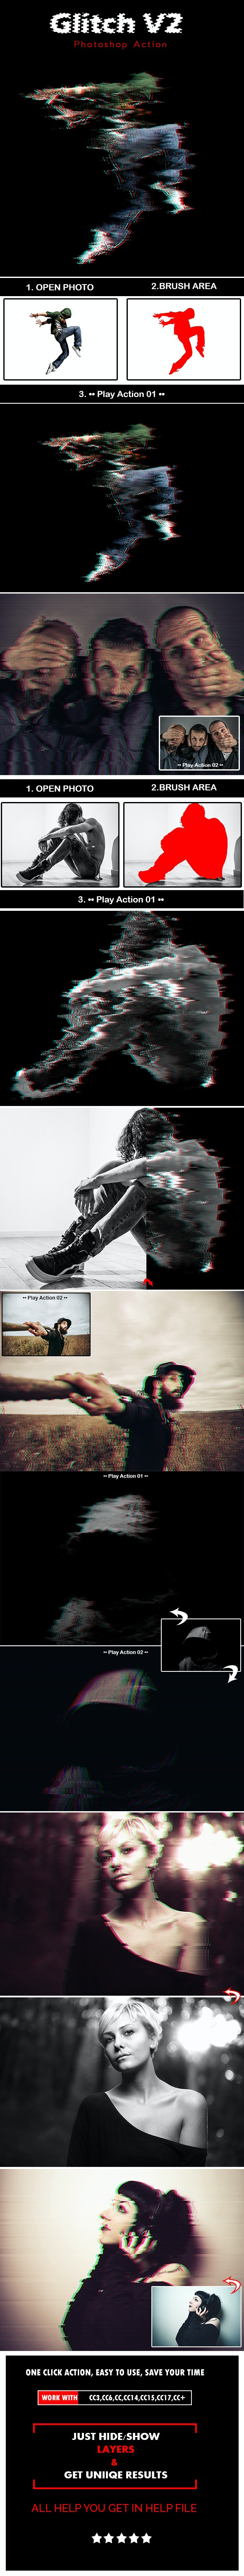 Glitch V2 Photoshop Action - Photo Effects Actions